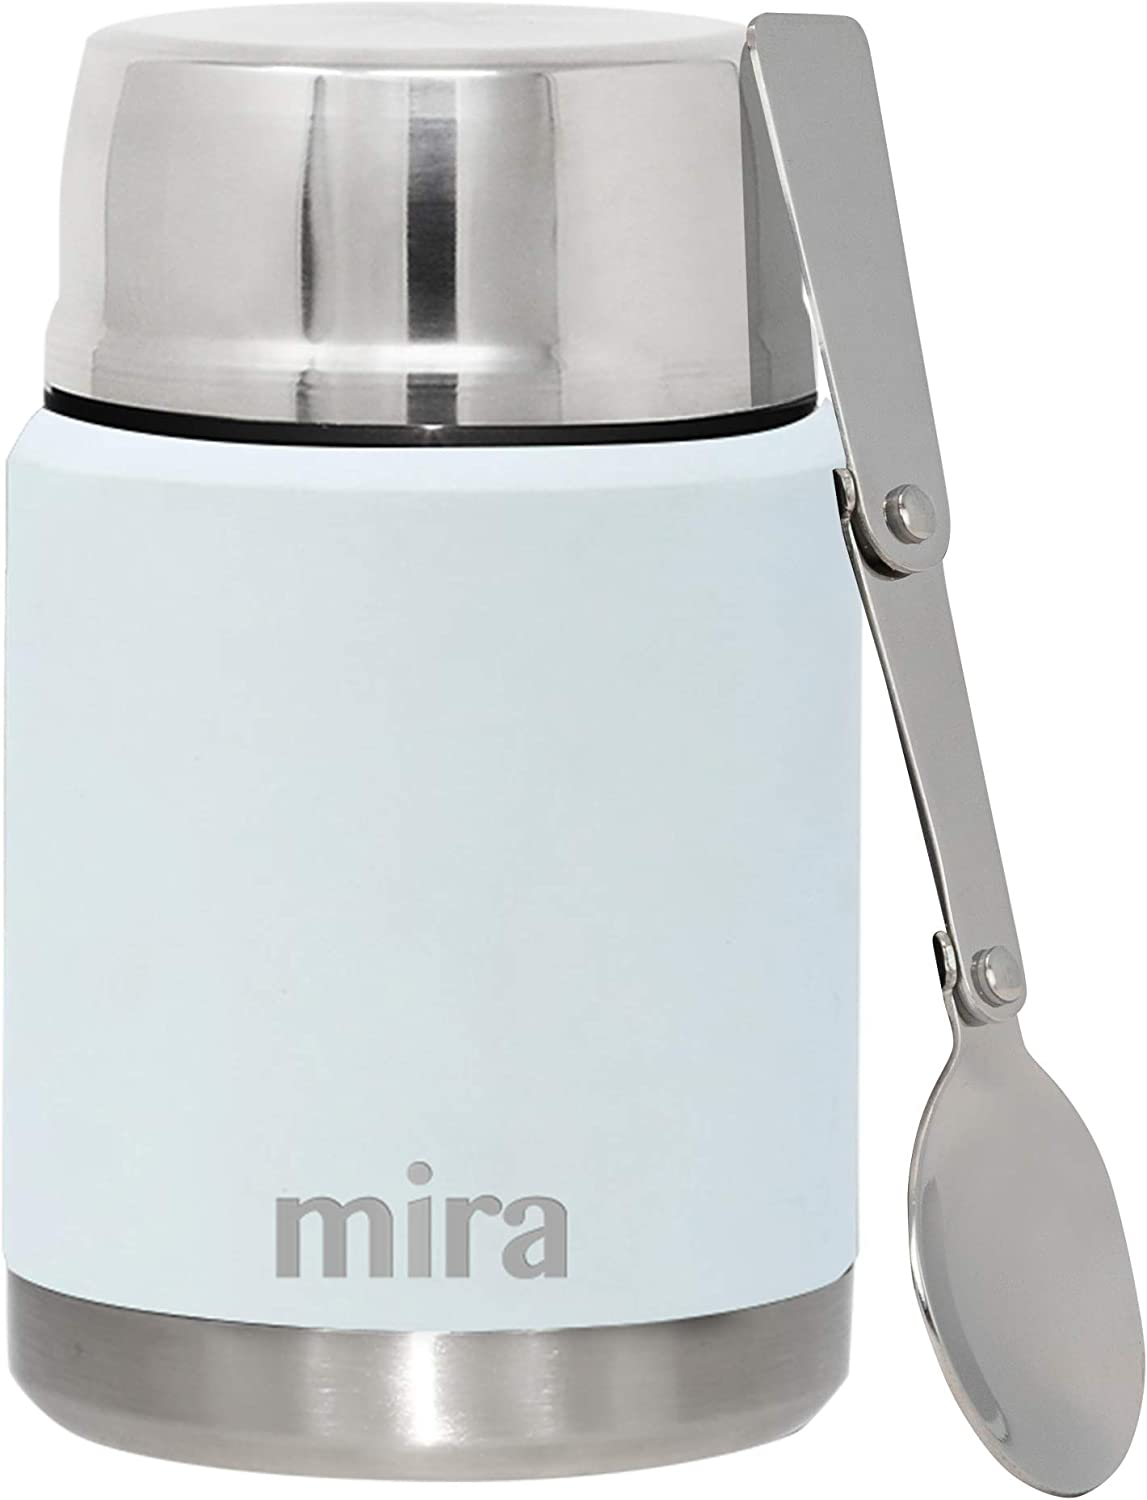 MIRA Lunch, Food Jar - Vacuum Insulated Stainless Steel Lunch Thermos with Portable Folding Spoon - 17 oz (500 ml) - Pearl Blue